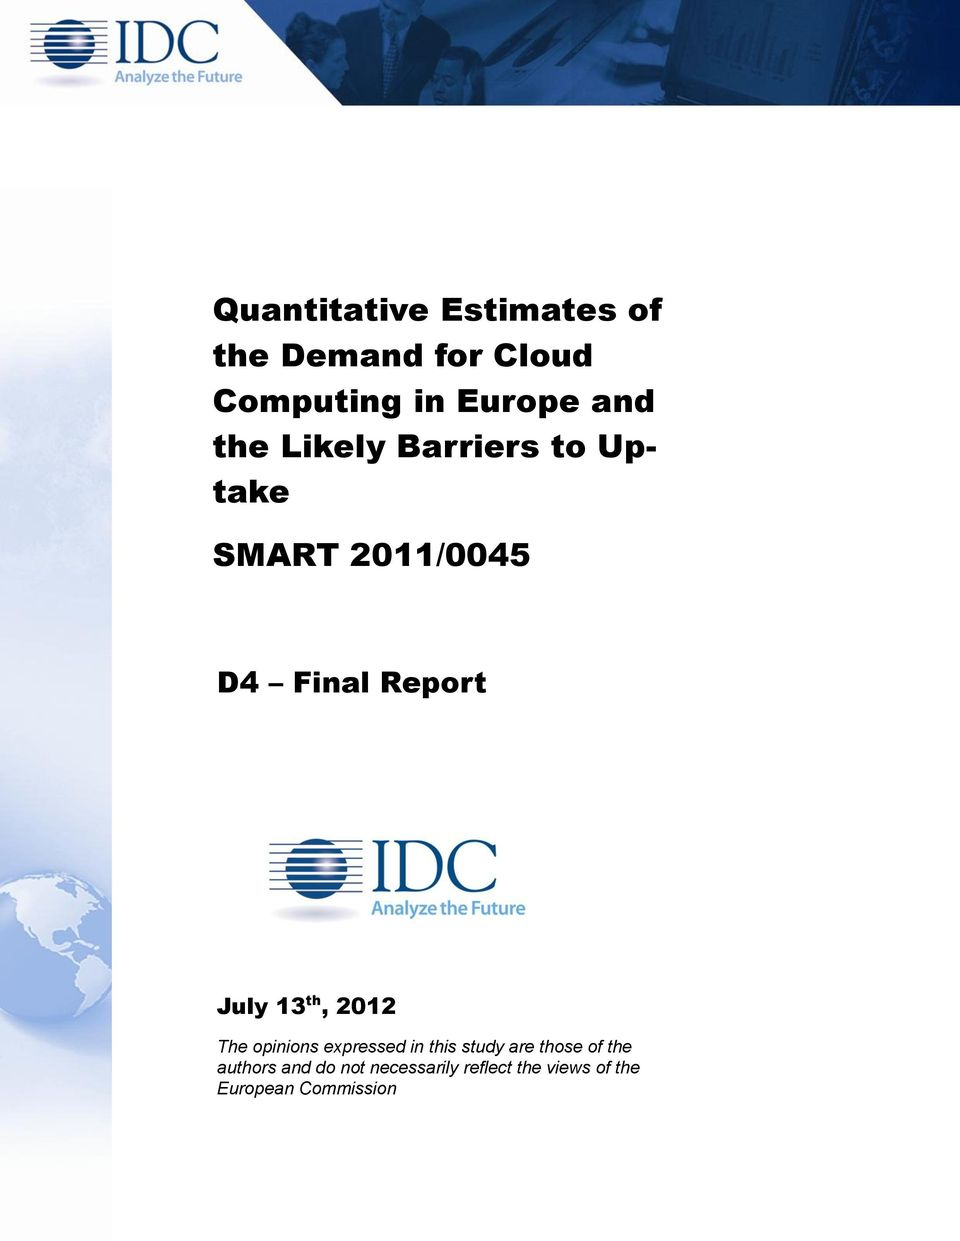 com Quantitative Estimates of the Demand for Cloud Computing in Europe and the Likely Barriers